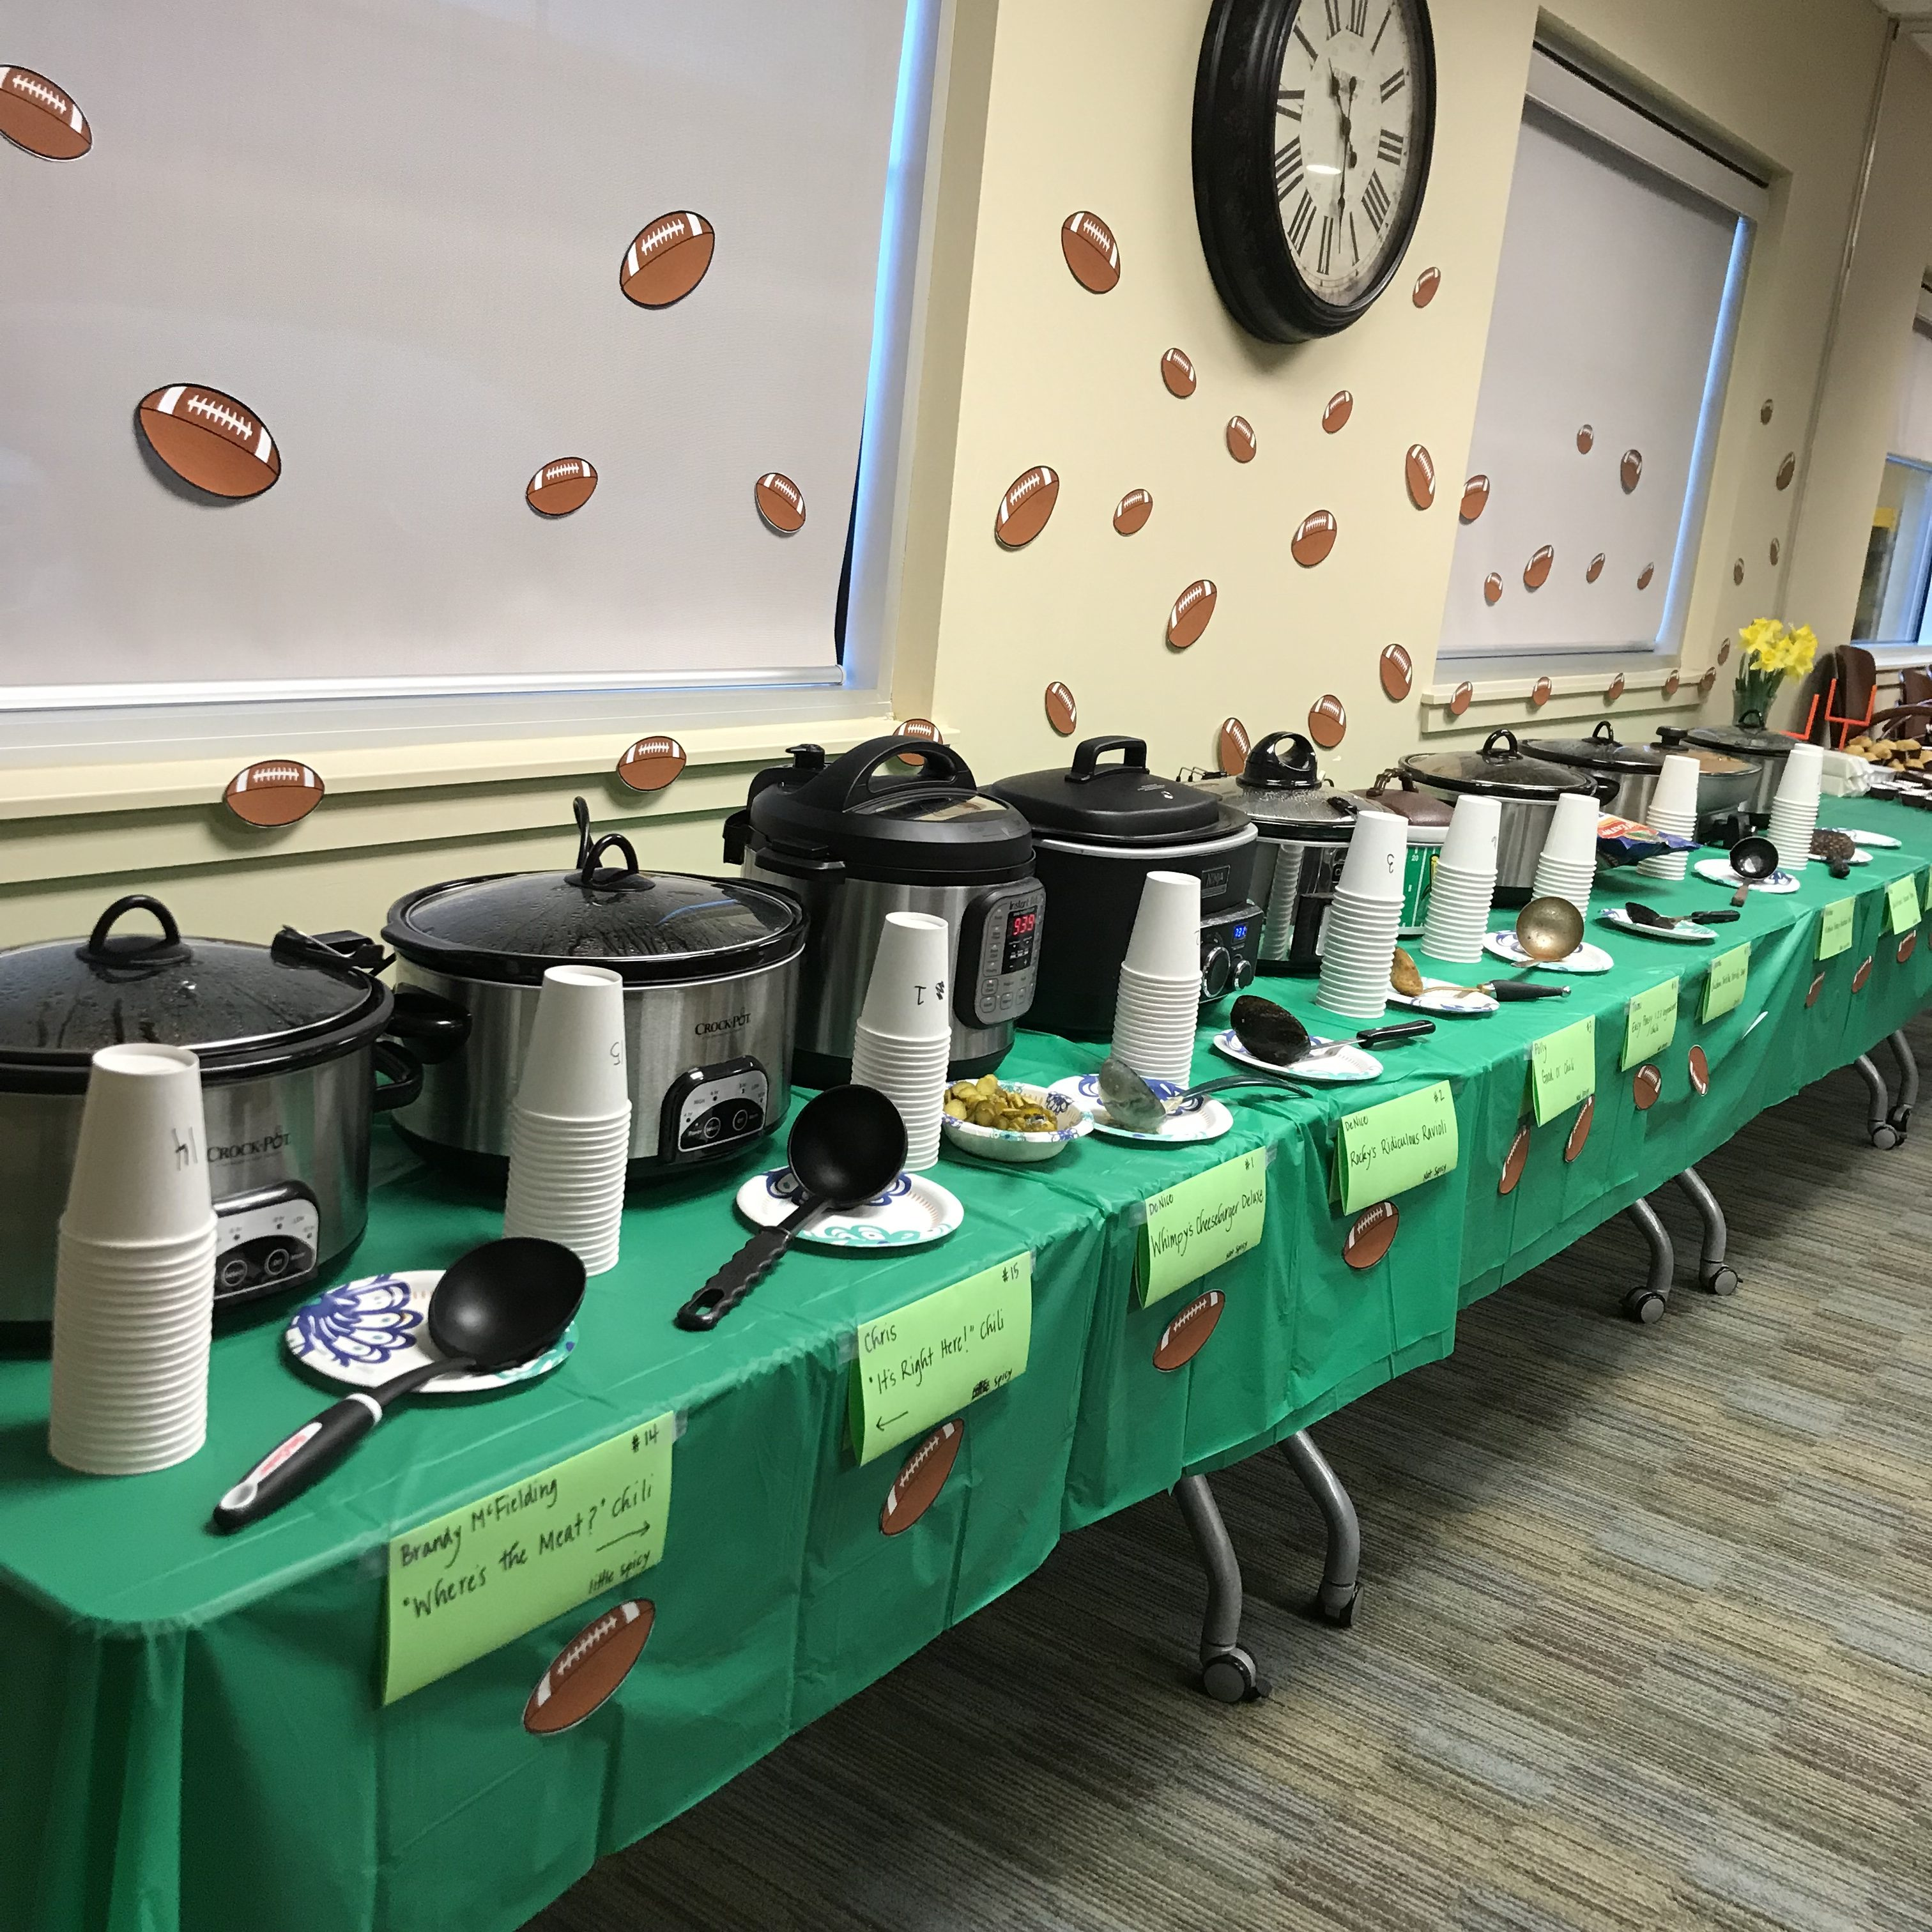 crock pots lined up with on a table during a chili cookoff